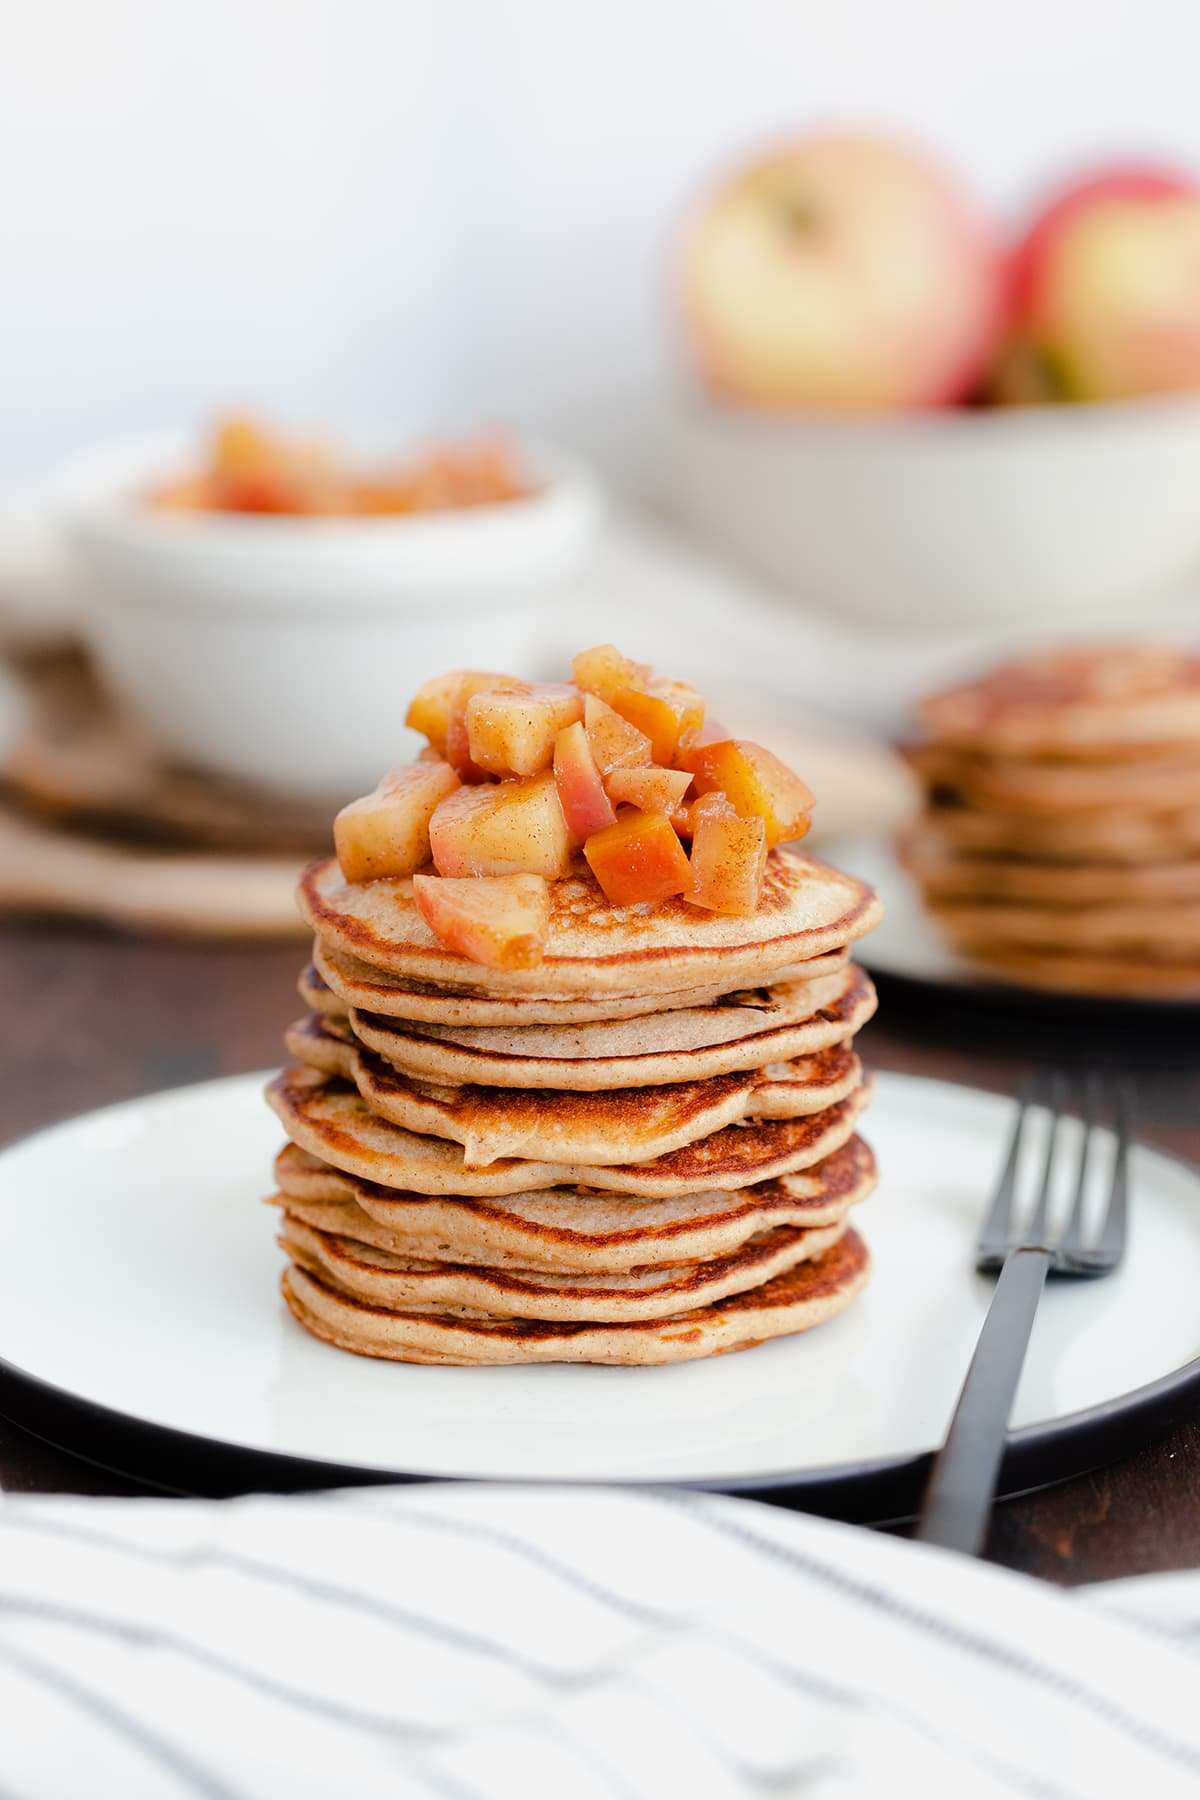 A straight on photo of Chocolate Chip Apple Cider Pancakes with Stewed Apples on a white plate and dark wooden background.